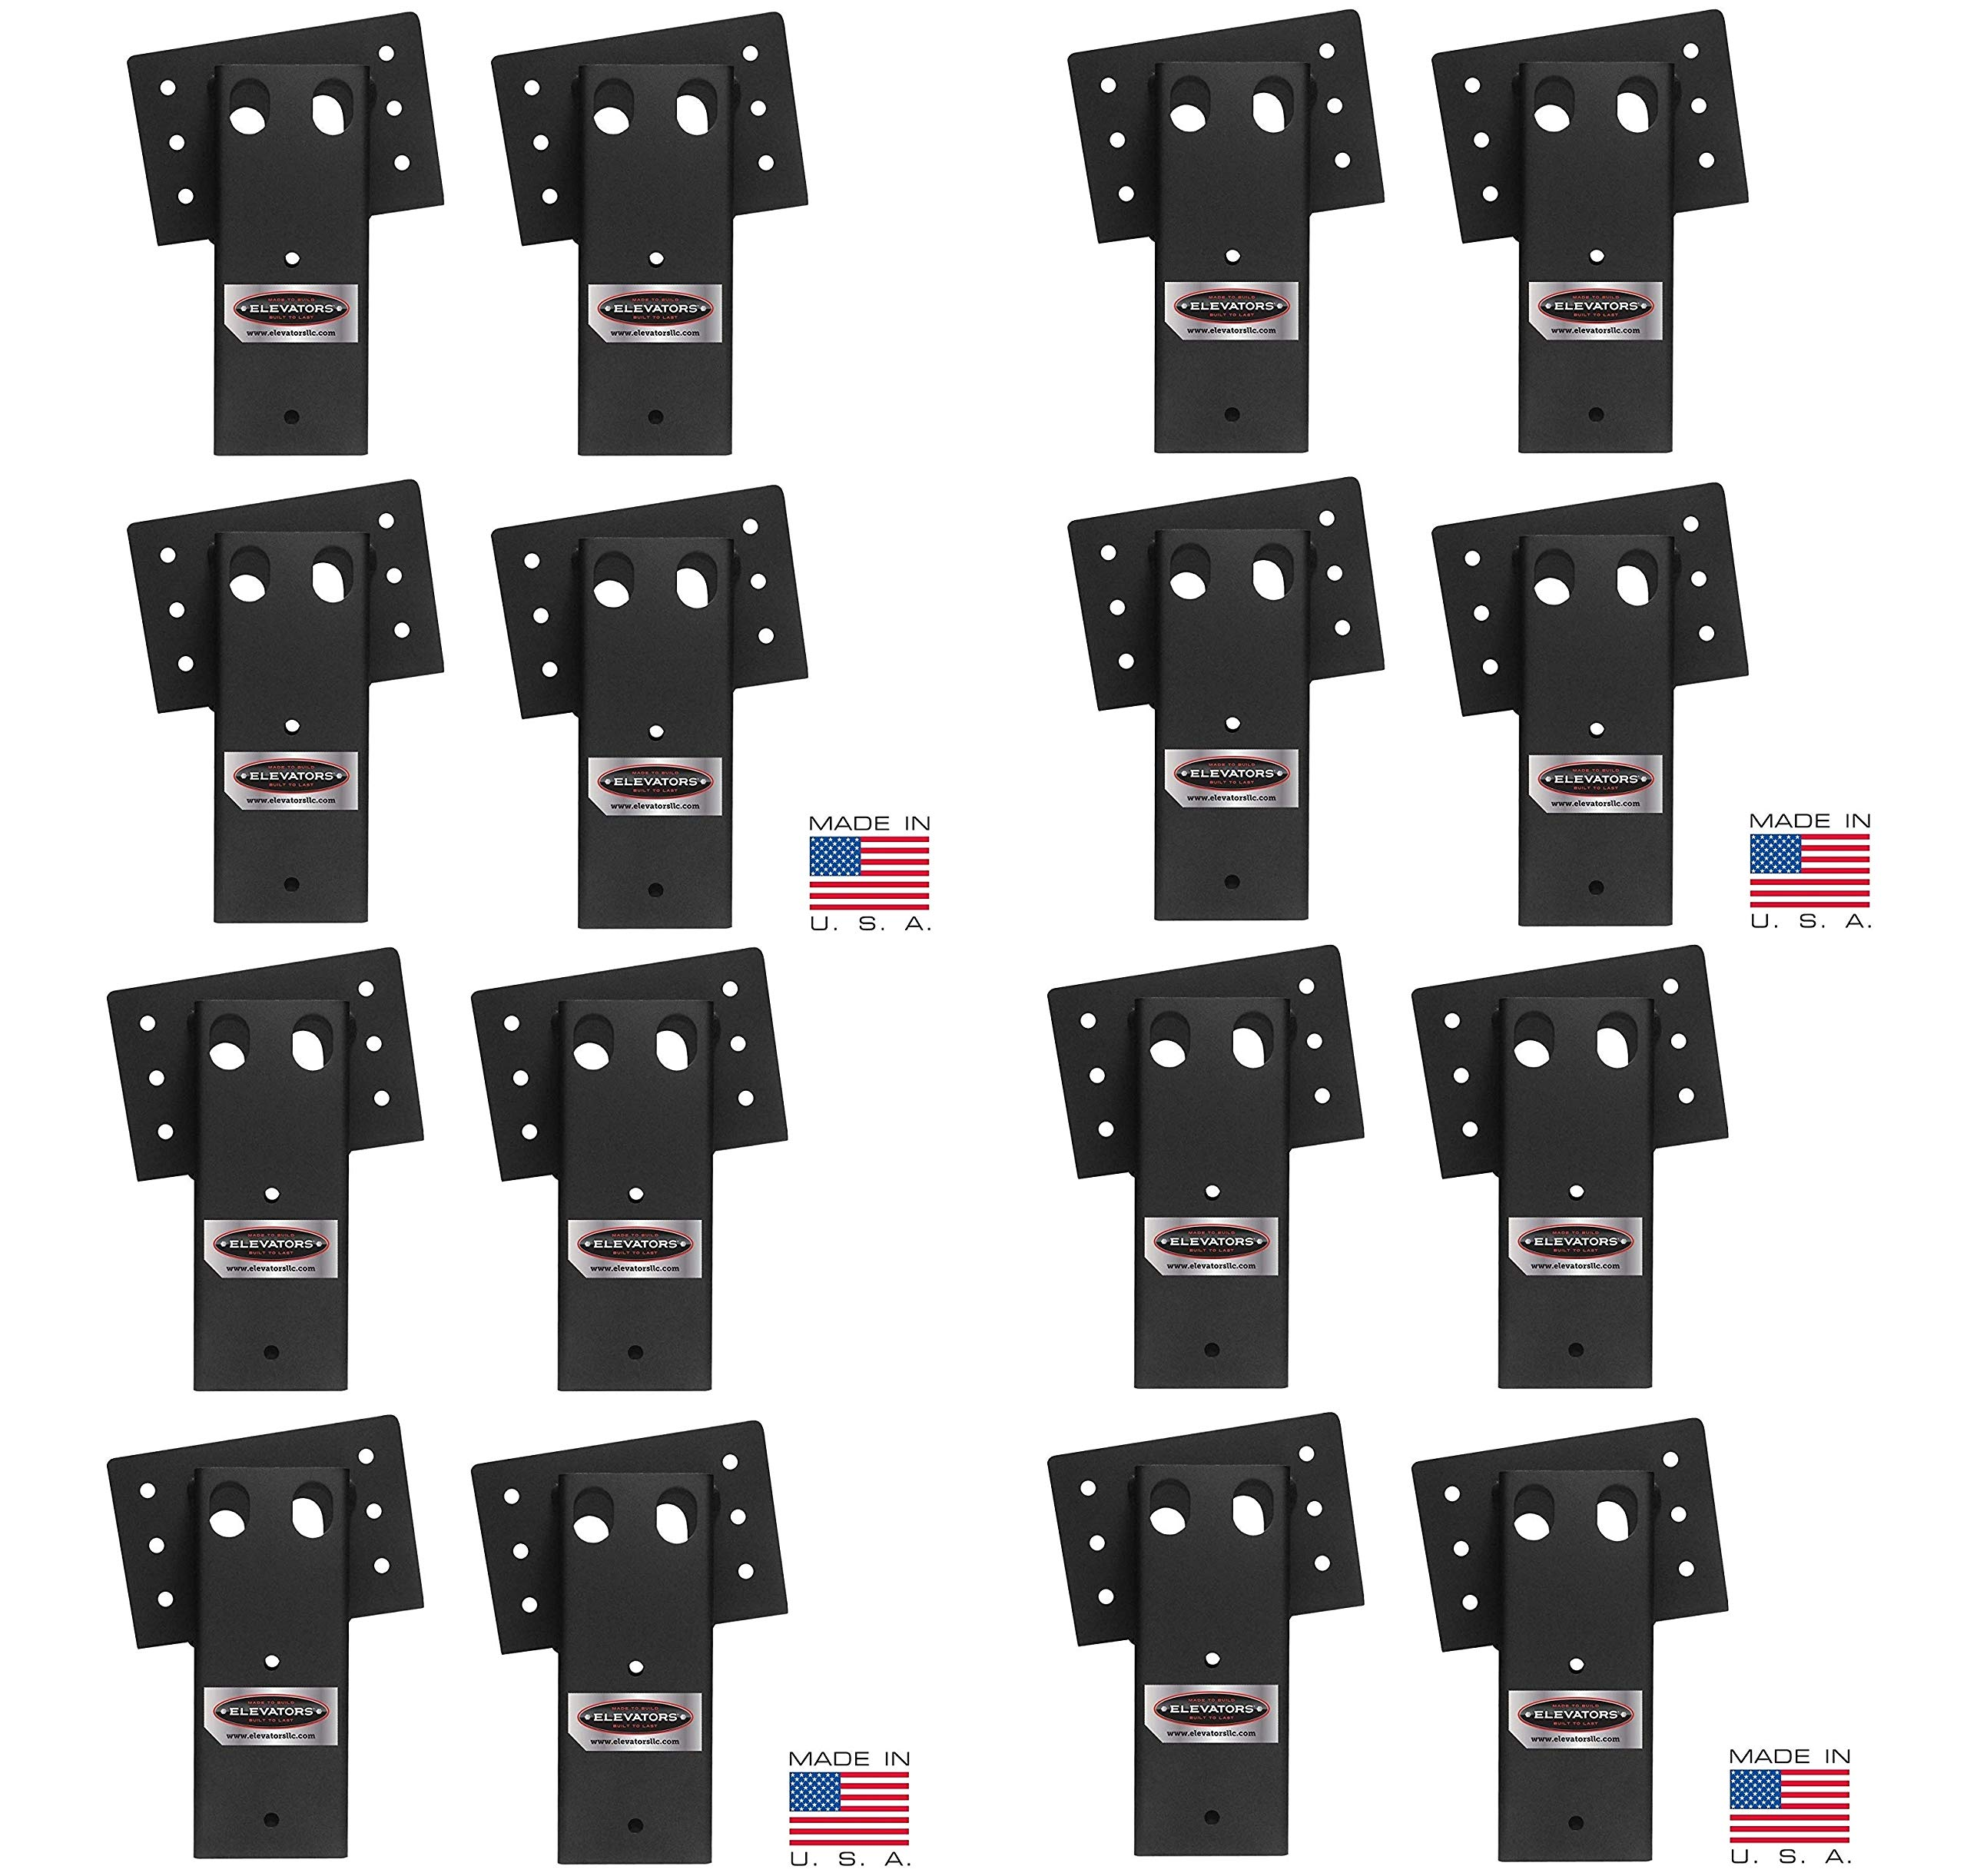 Elevators 4x4 Brackets for Deer Blinds, Playhouses, Swing Sets, Tree Houses. Made in The USA with Premium Construction Grade Steel (4 X Pack of 4)